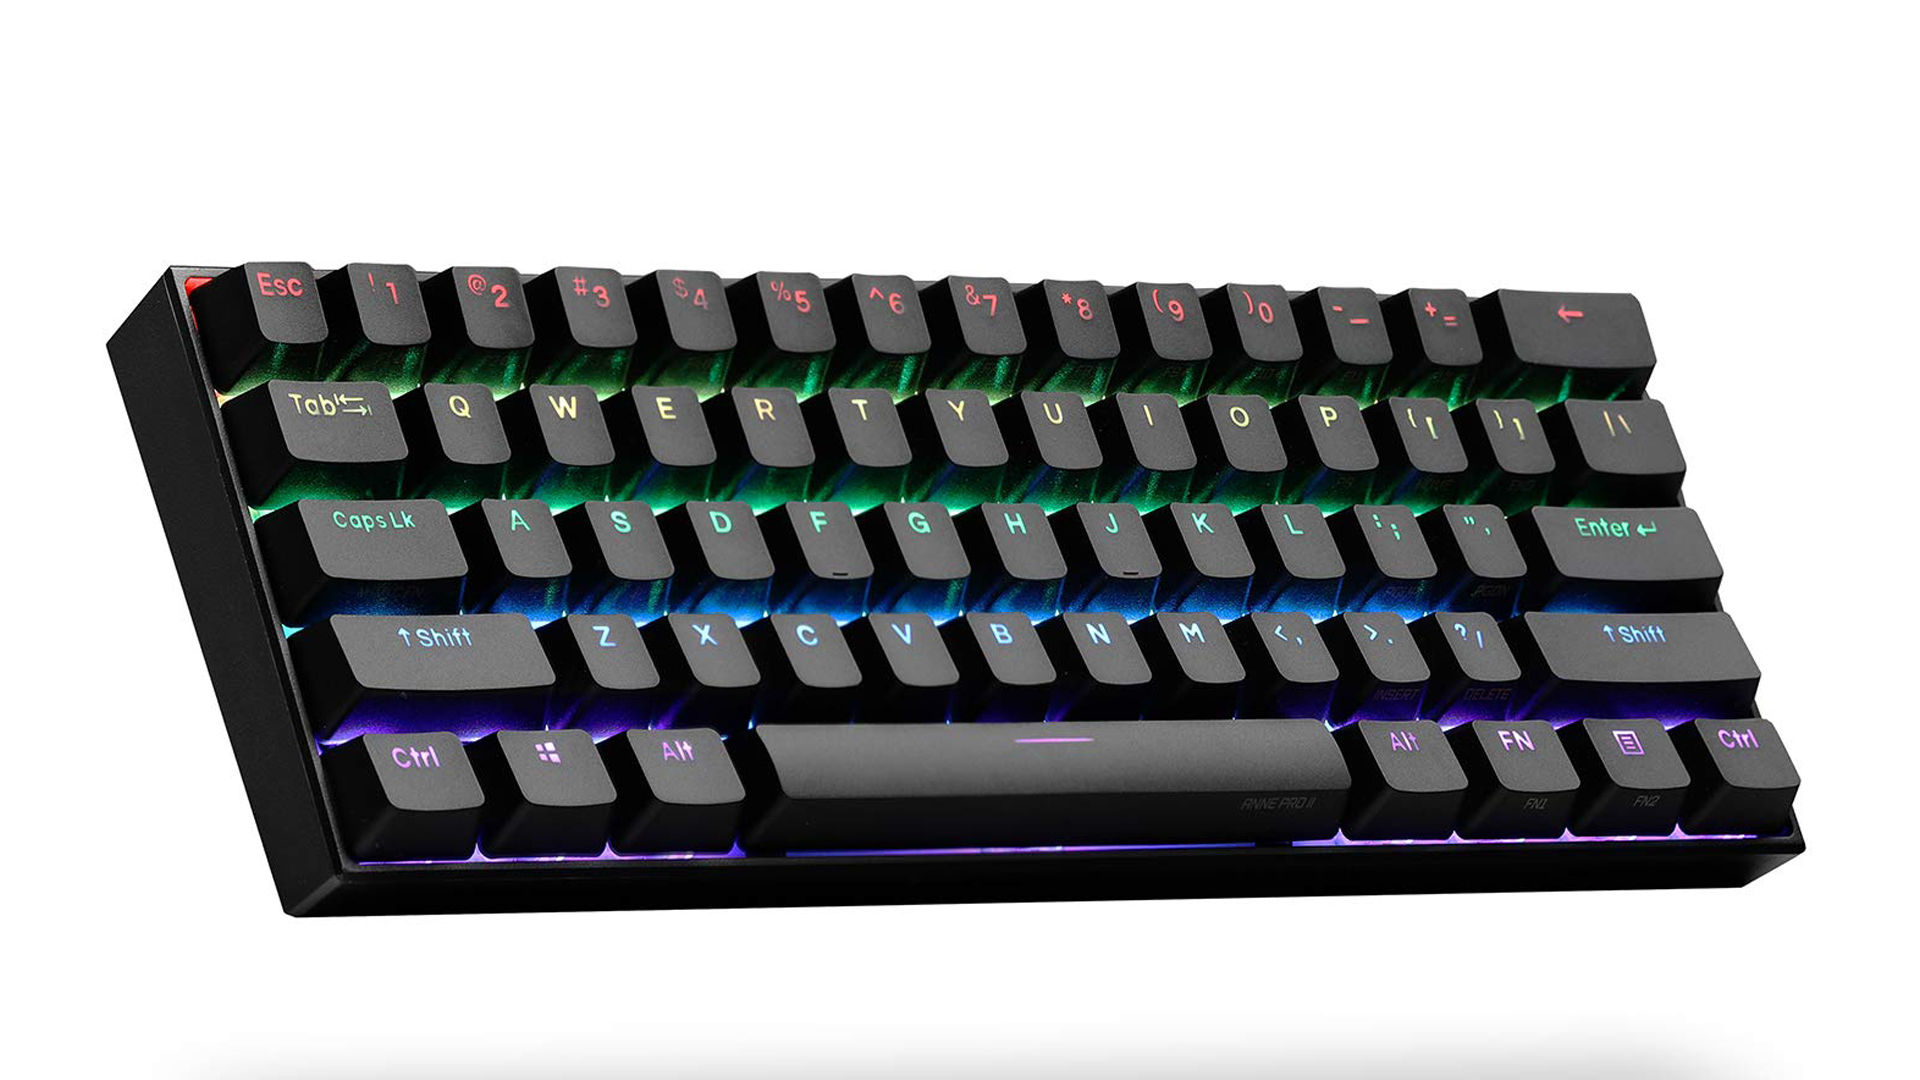 A product shot of the Anne Pro 2 mechanical keyboard